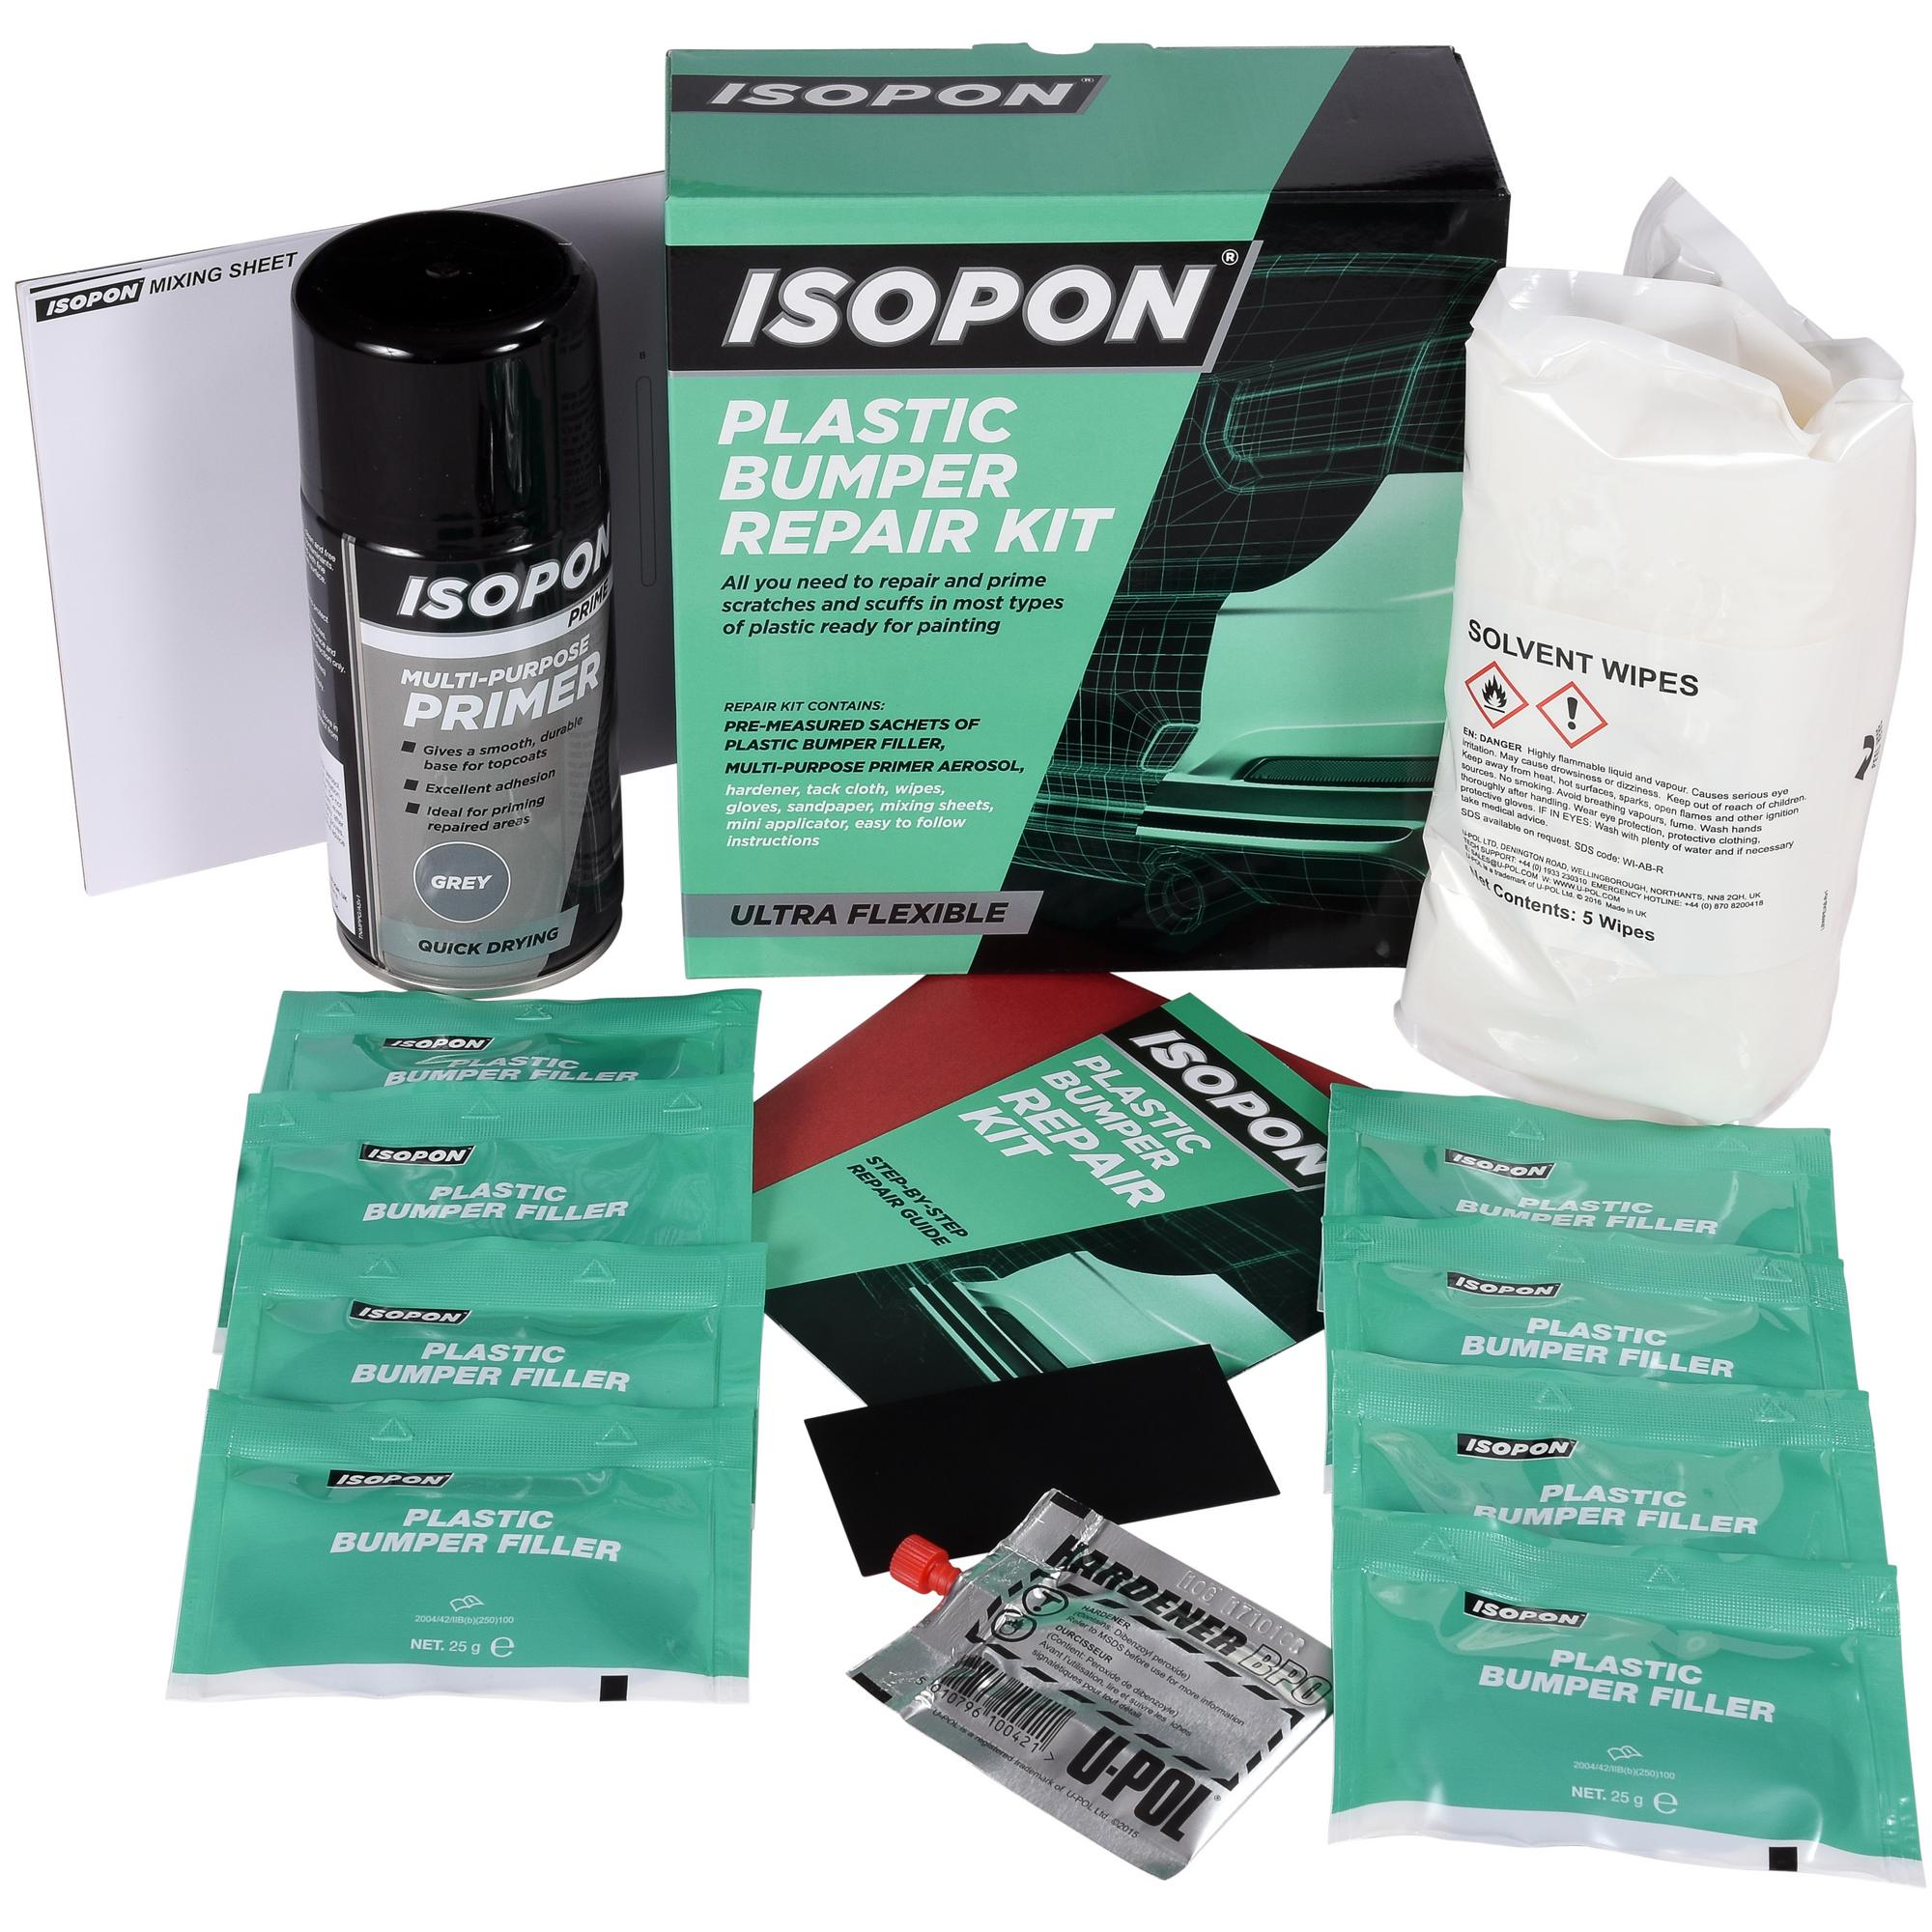 plastic bumper repair kit from Isopon. How to use the kits